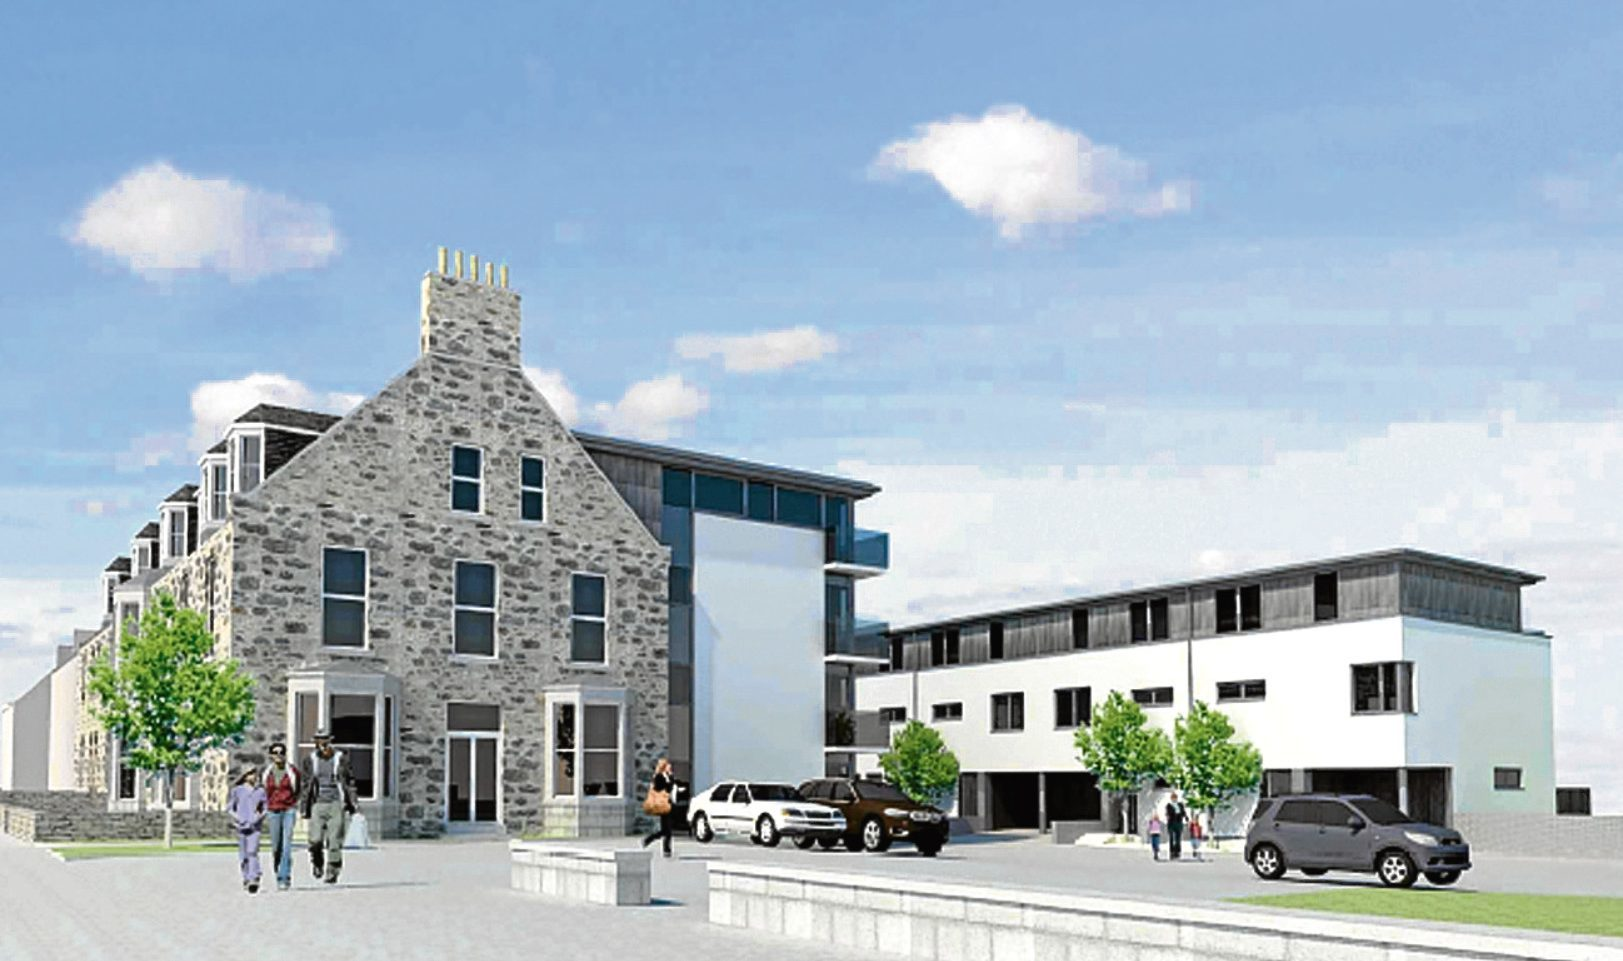 How the former Udny Arms Hotel in Newburgh could look